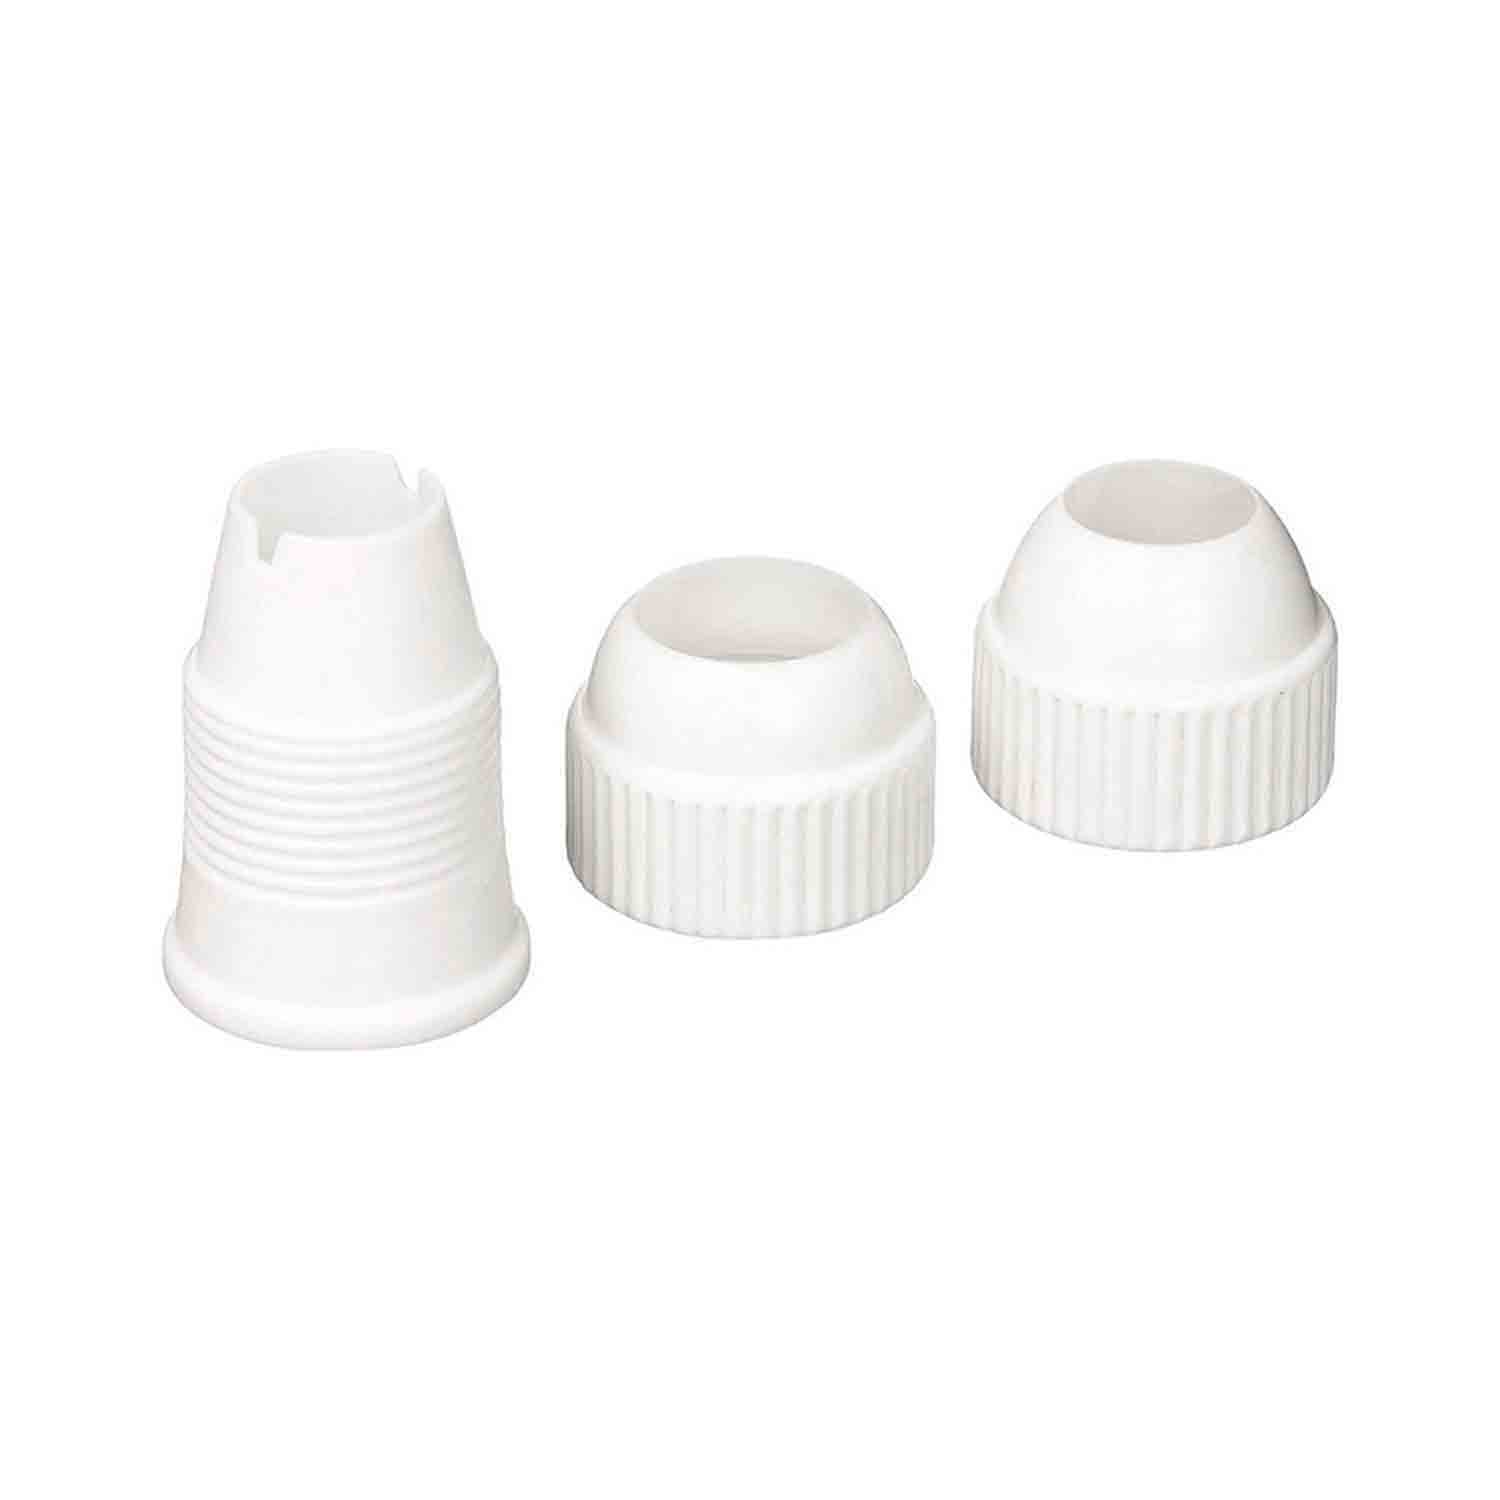 #2000 Large 3 Piece Plastic Coupler